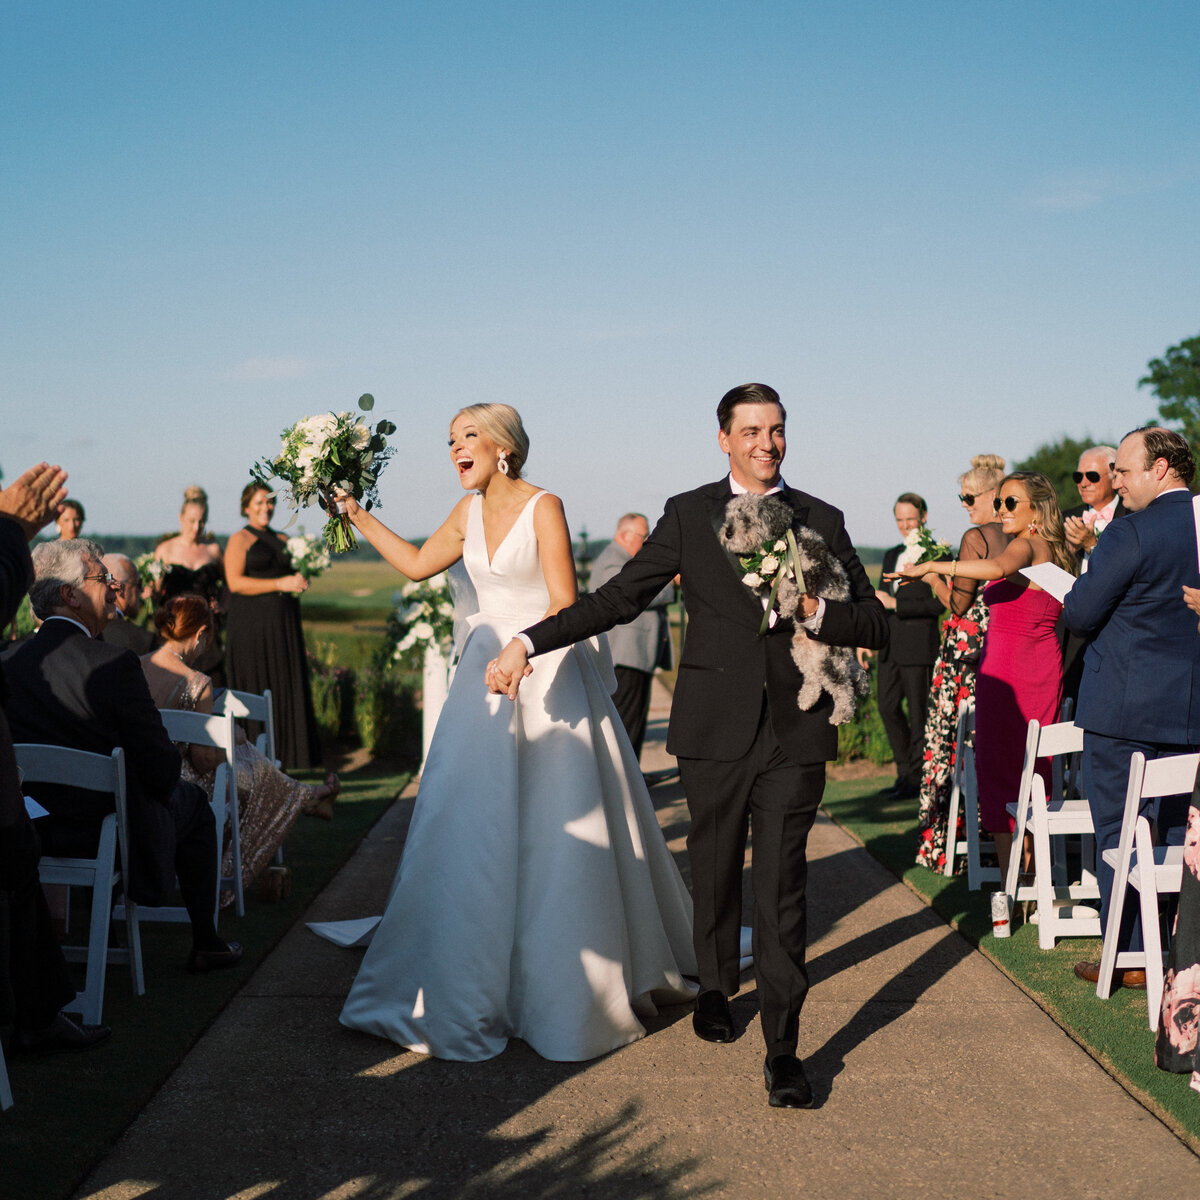 Belfair-Plantation-Bluffton-Hilton-Head-Island-Wedding-Philip-Casey-Photo-52